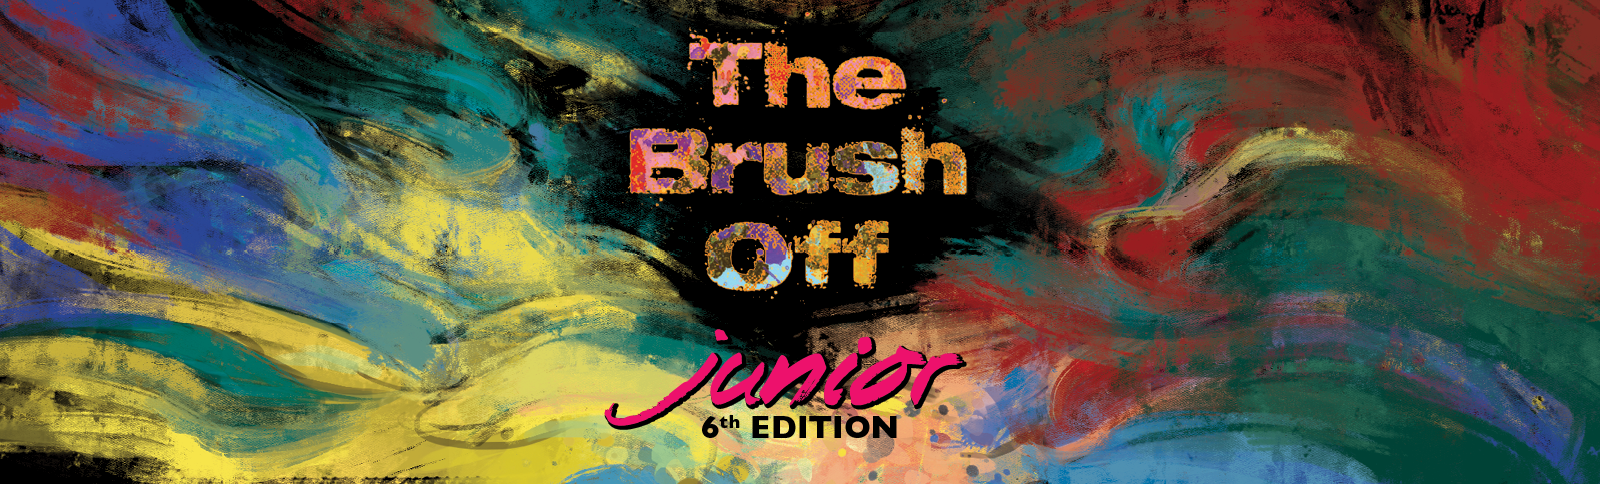 The Brush off Junior | 6th Edition